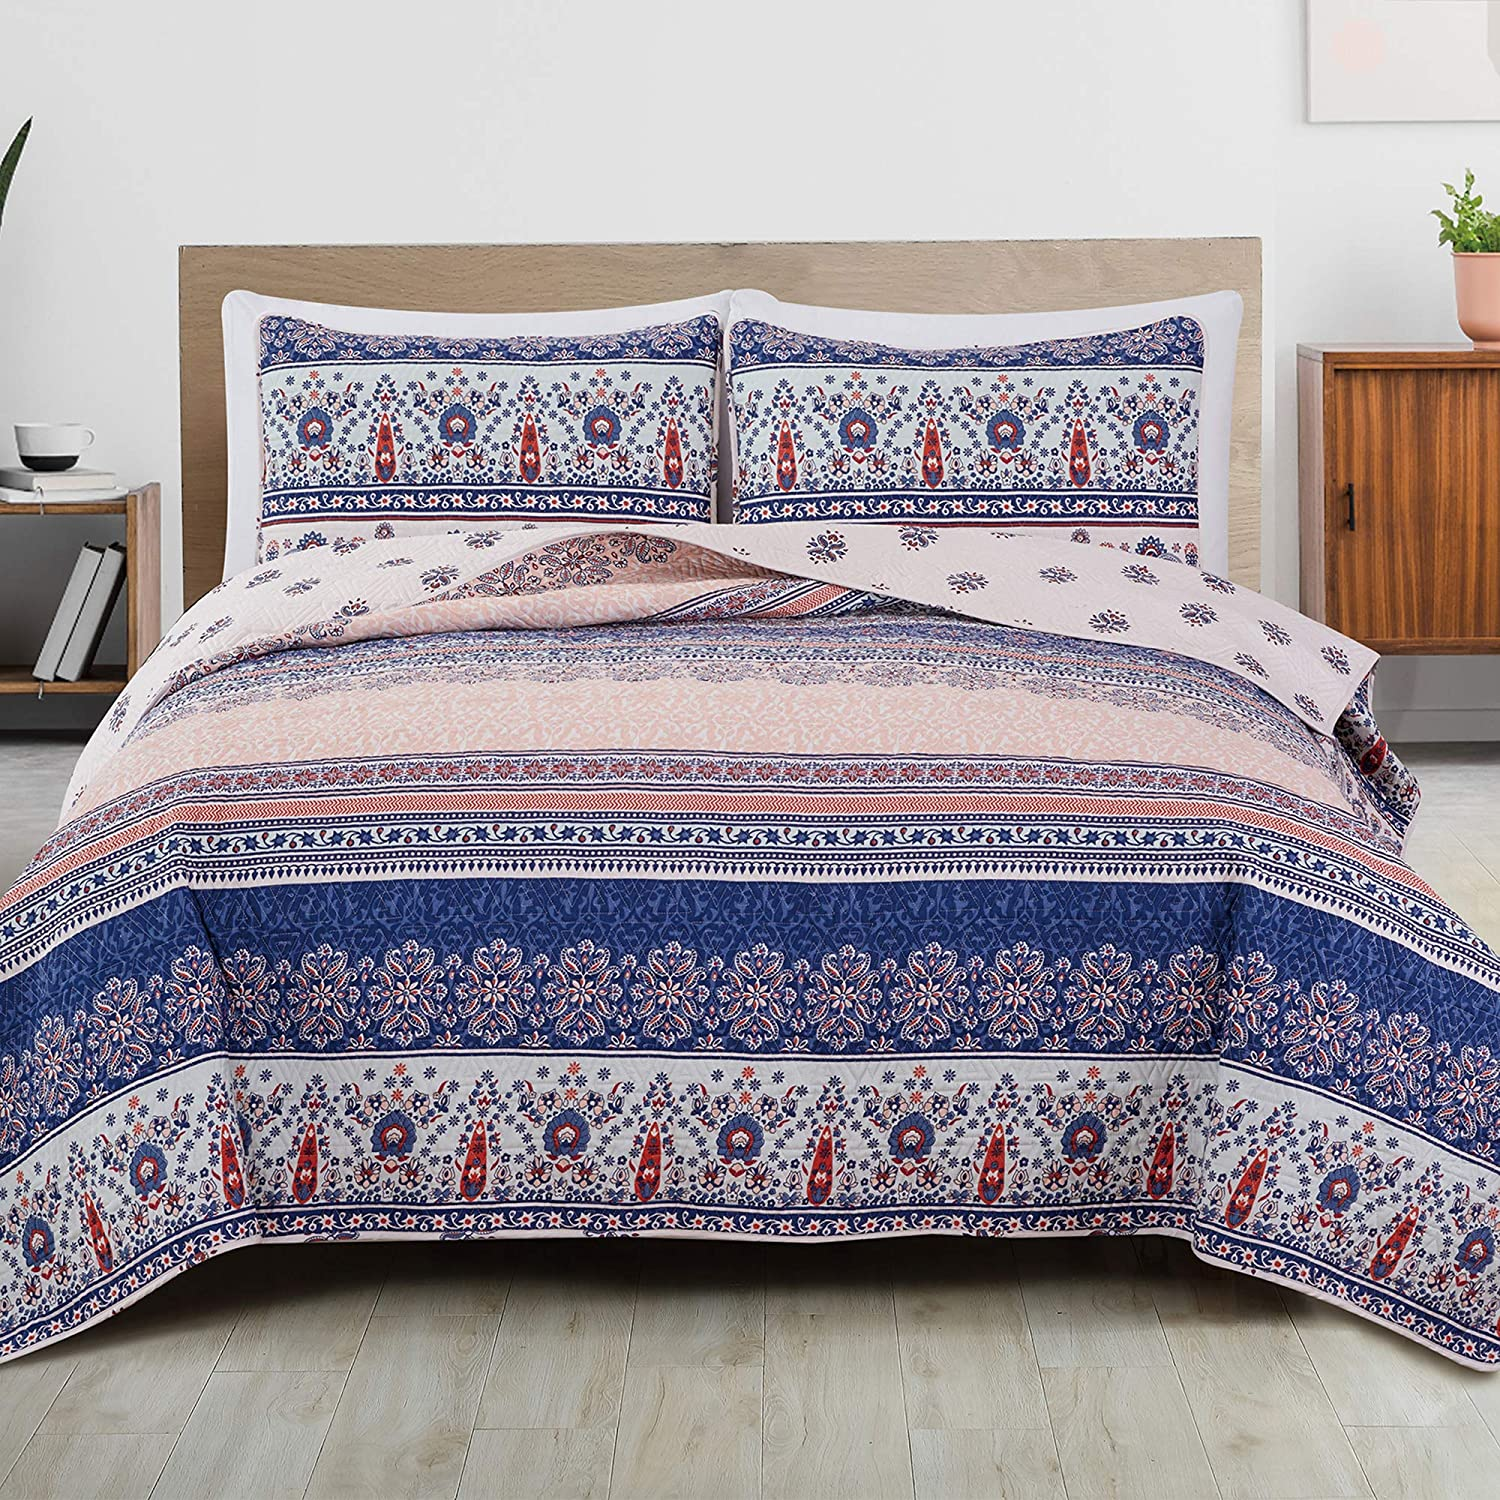 Great Bay Home 3-Piece Reversible Quilt Set with Shams. All-Season Bedspread with Boho Striped Pattern. San Mateo Collection (King, Multi)